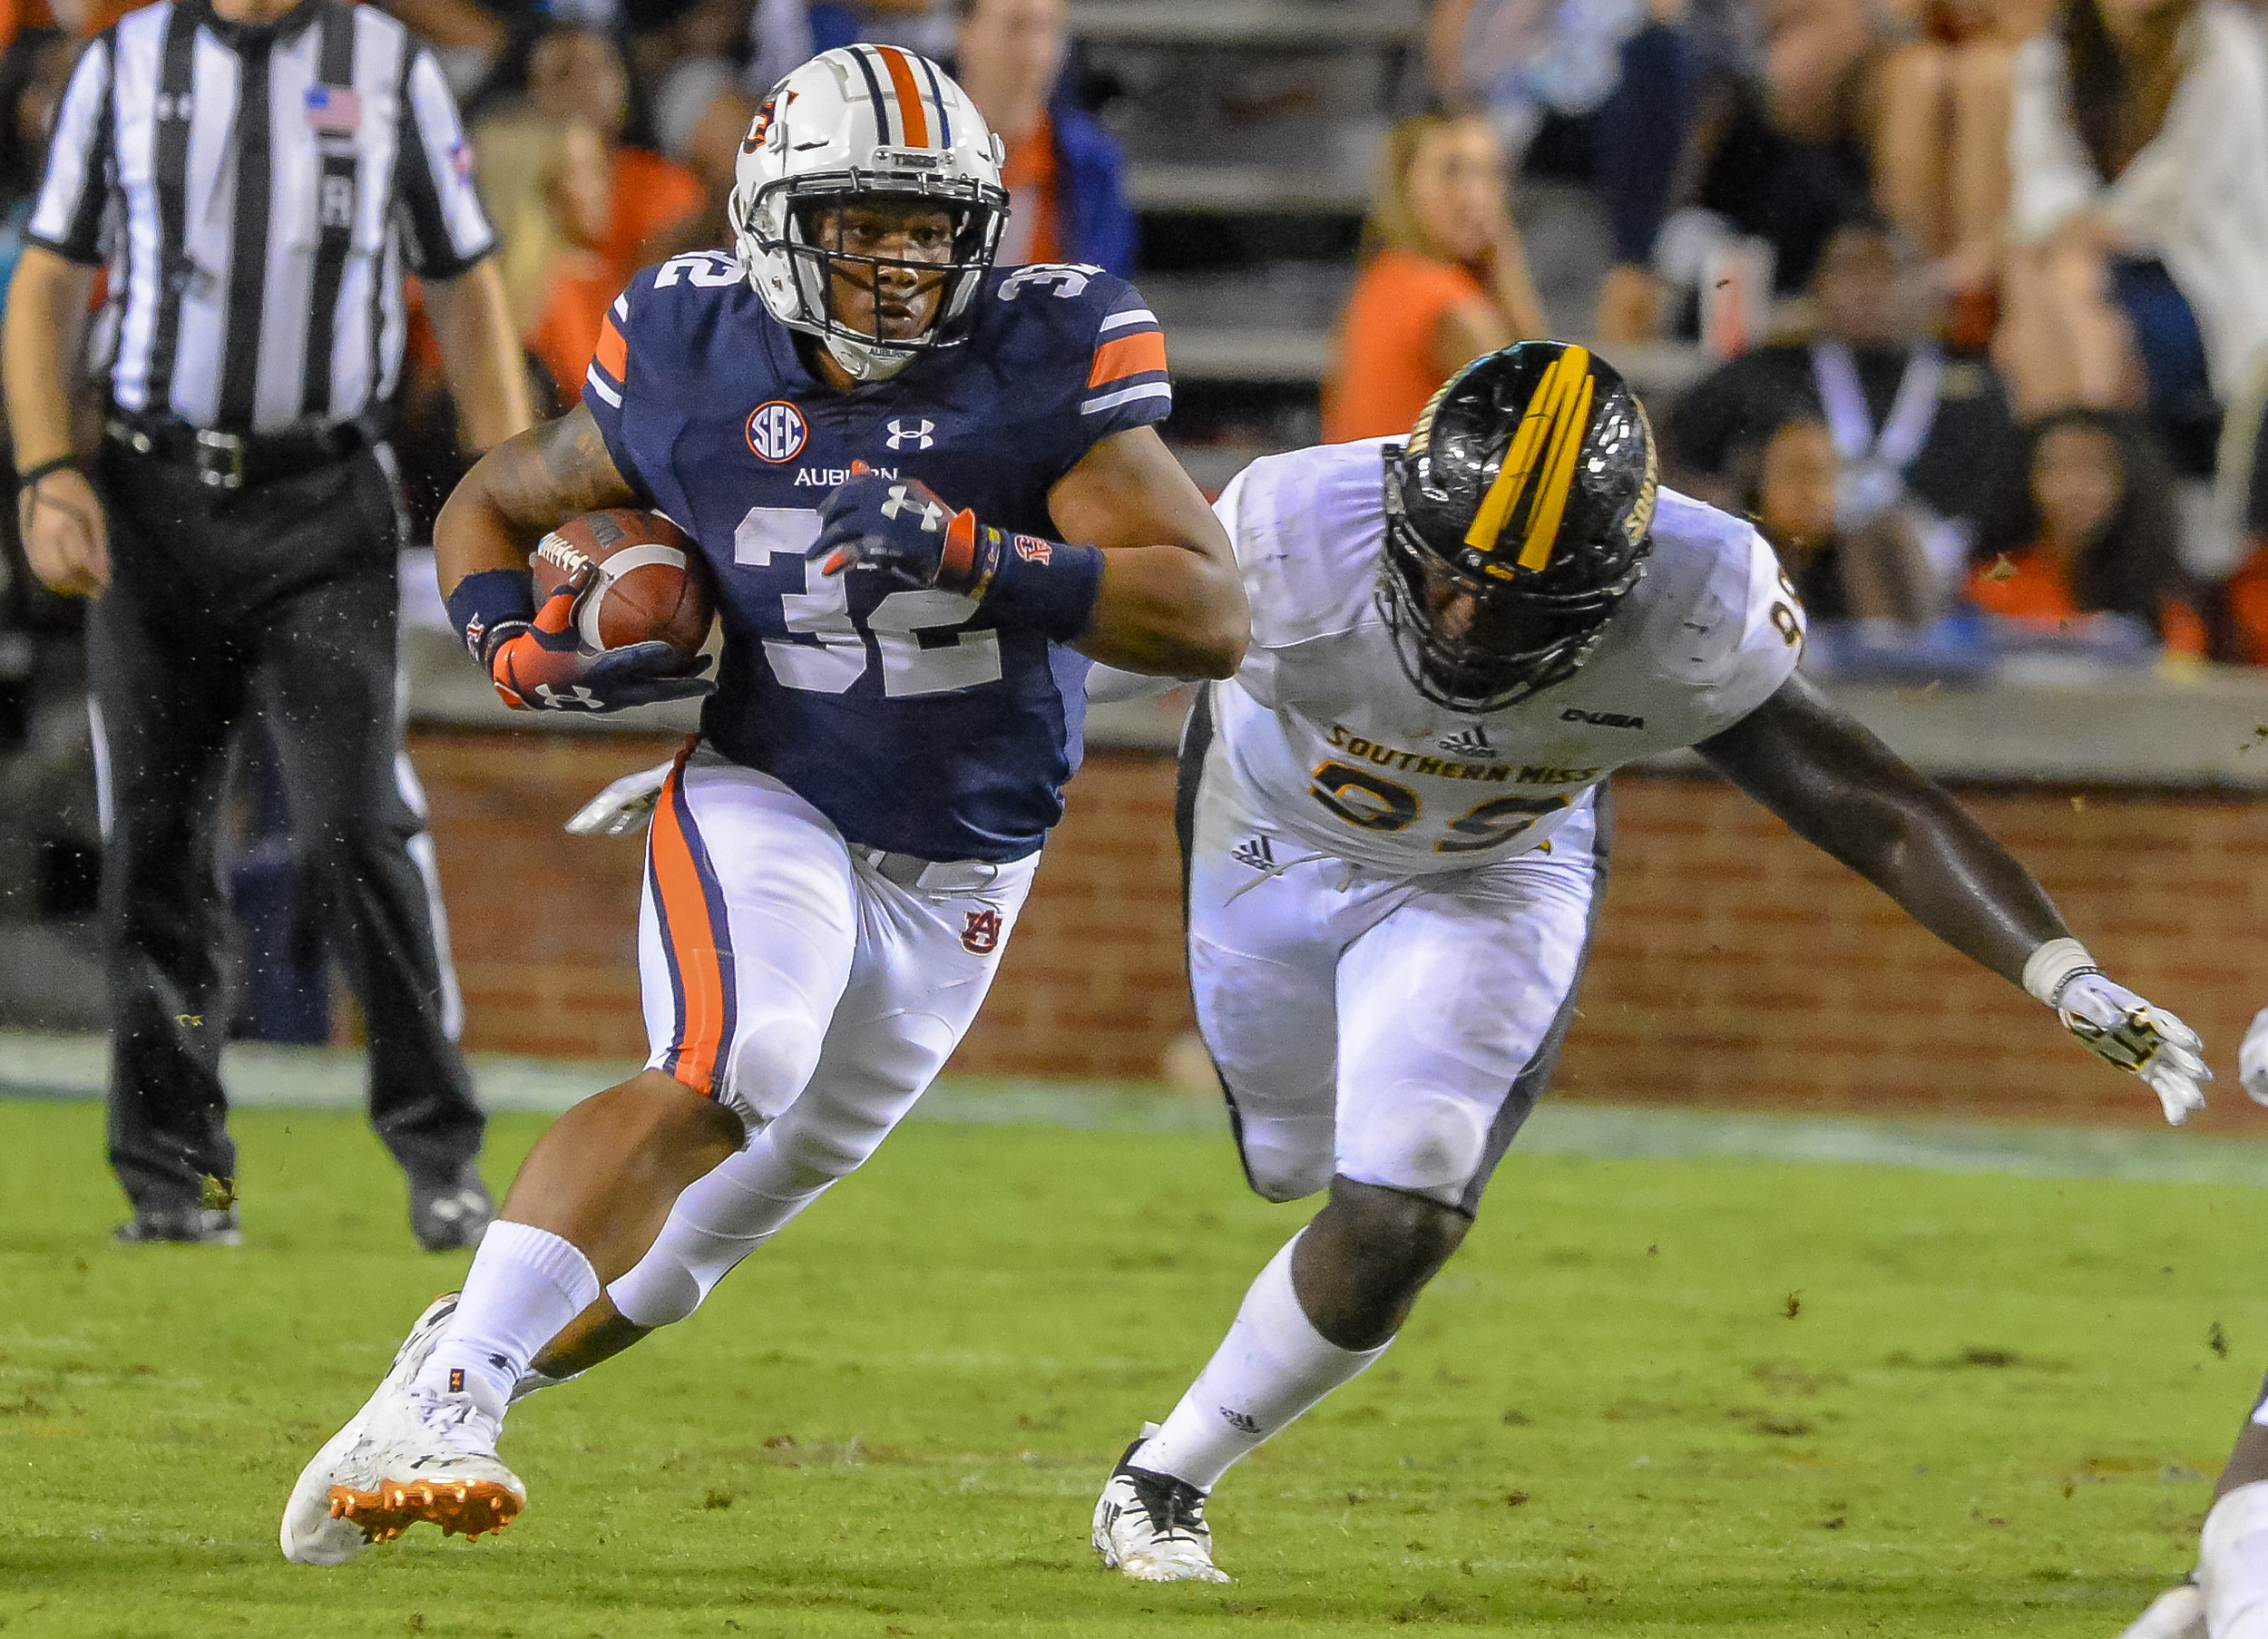 Auburn Tigers running back Malik Miller (32) runs after catching a pass during the second half of Saturday's game, at Jordan Hare Stadium in Auburn AL. Daily Mountain Eagle -  Jeff Johnsey